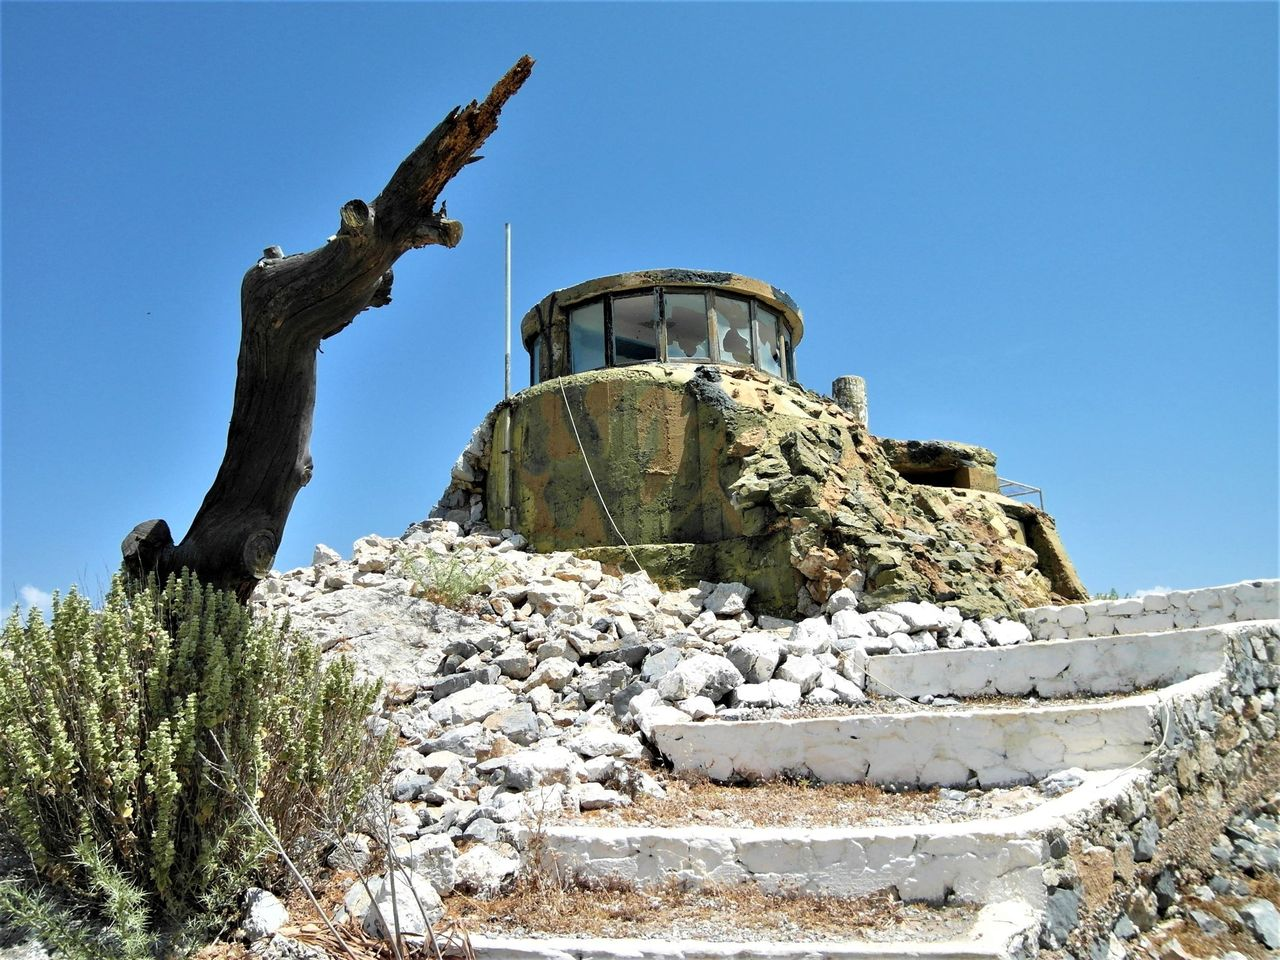 A view of the observation post on Apitiki